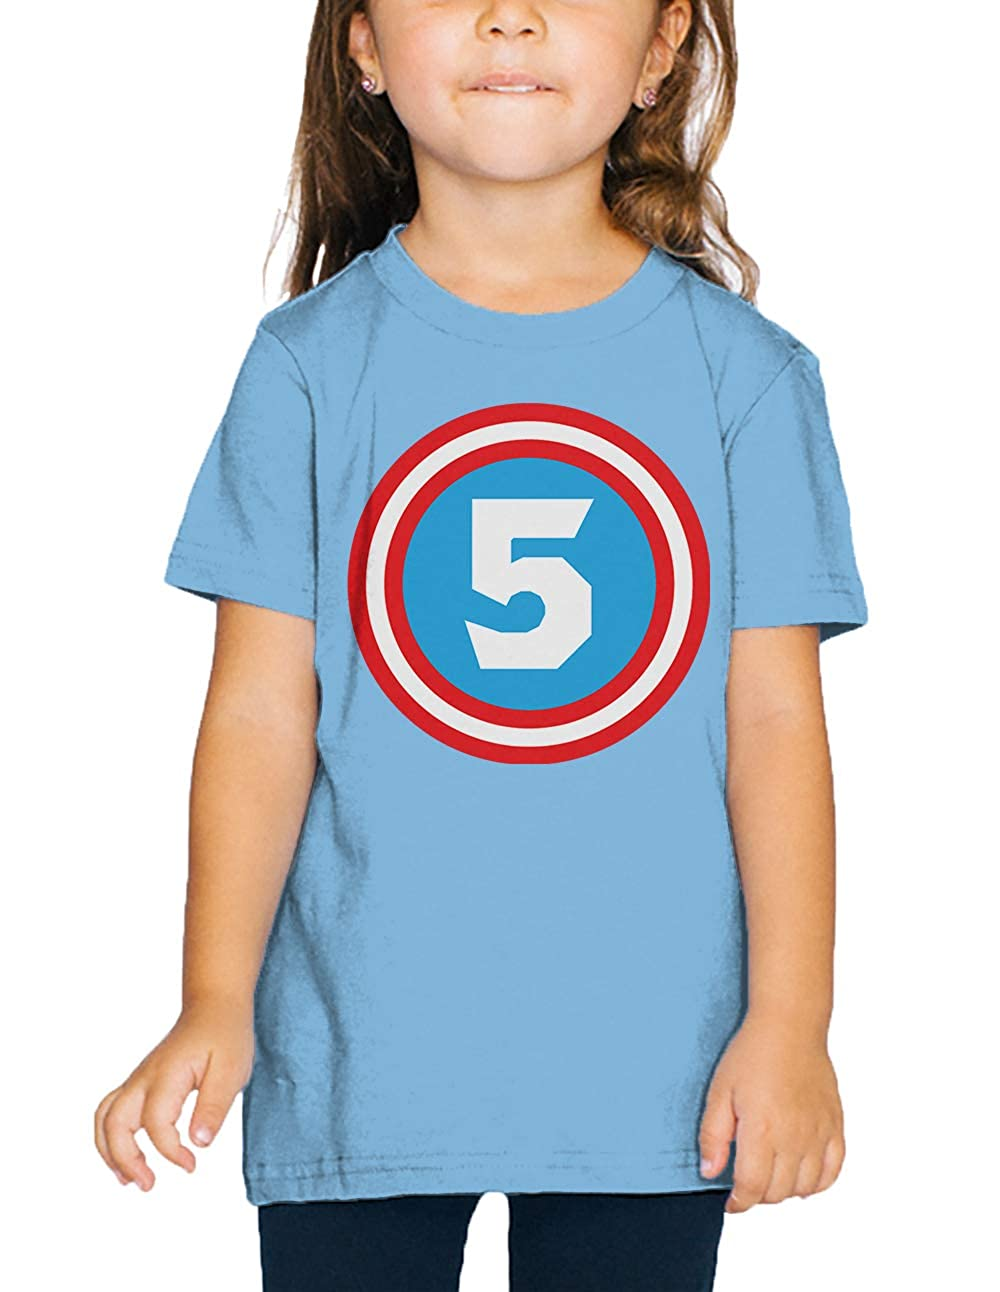 SpiritForged Apparel Superhero Five Year Old Toddler T-Shirt